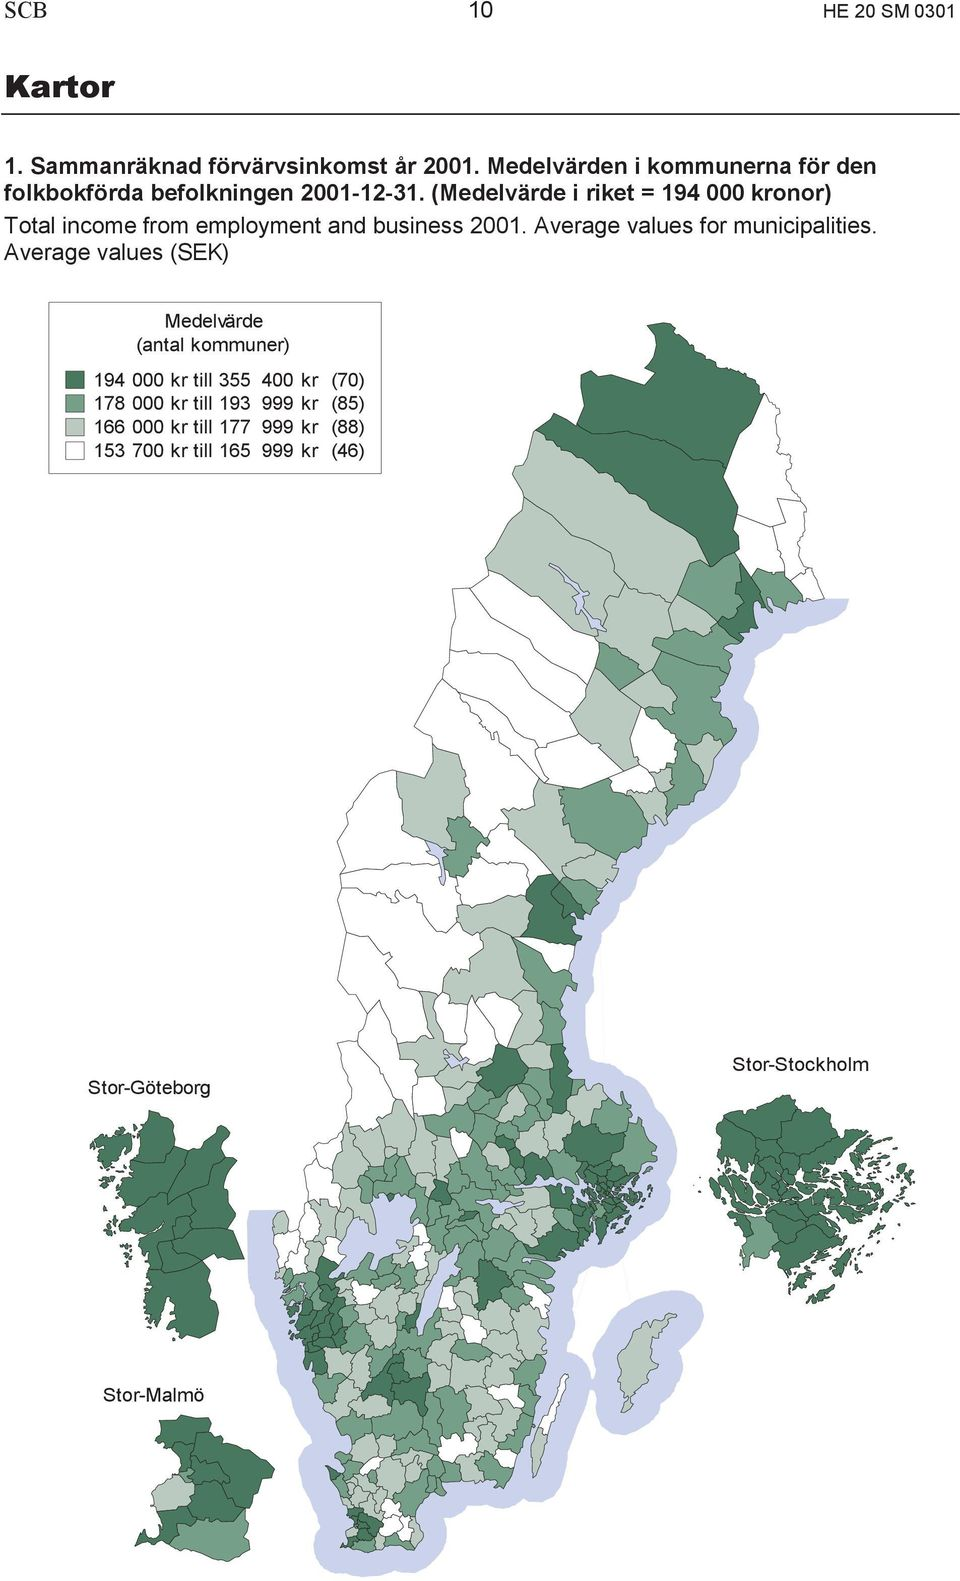 (Medelvärde i riket = 194 000 kronor) Total income from employment and business 2001. Average values for municipalities.